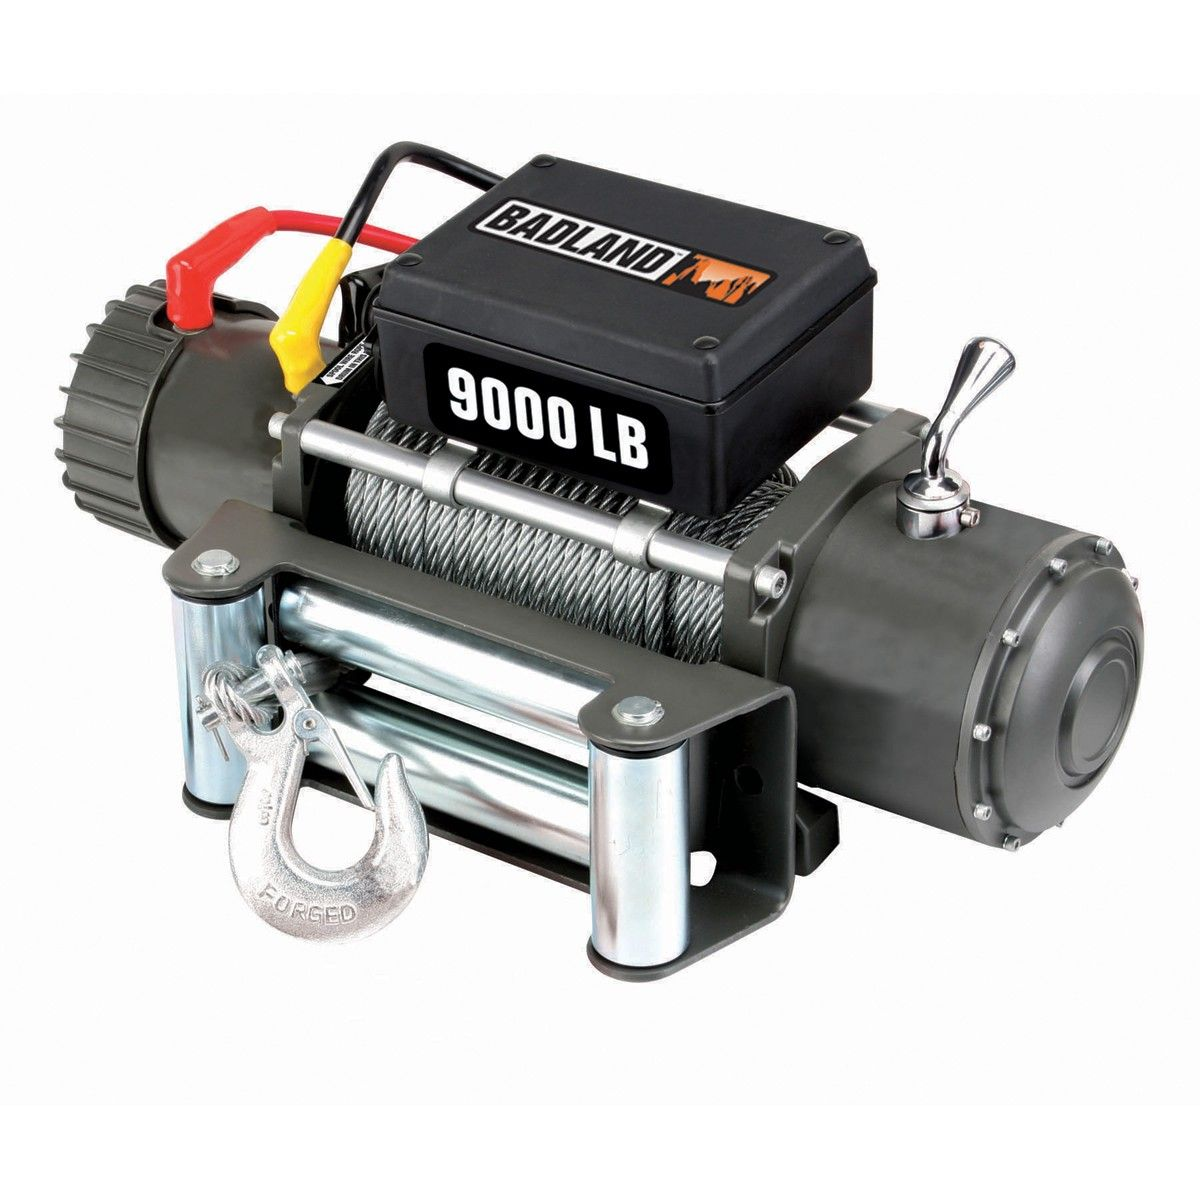 Badland Winches 68143 9000 lb. Off-Road Vehicle Winch with Automatic on harbor freight winch coupon, harbor freight electric winch, harbor freight badlands winch, warn 8000 lb winch,